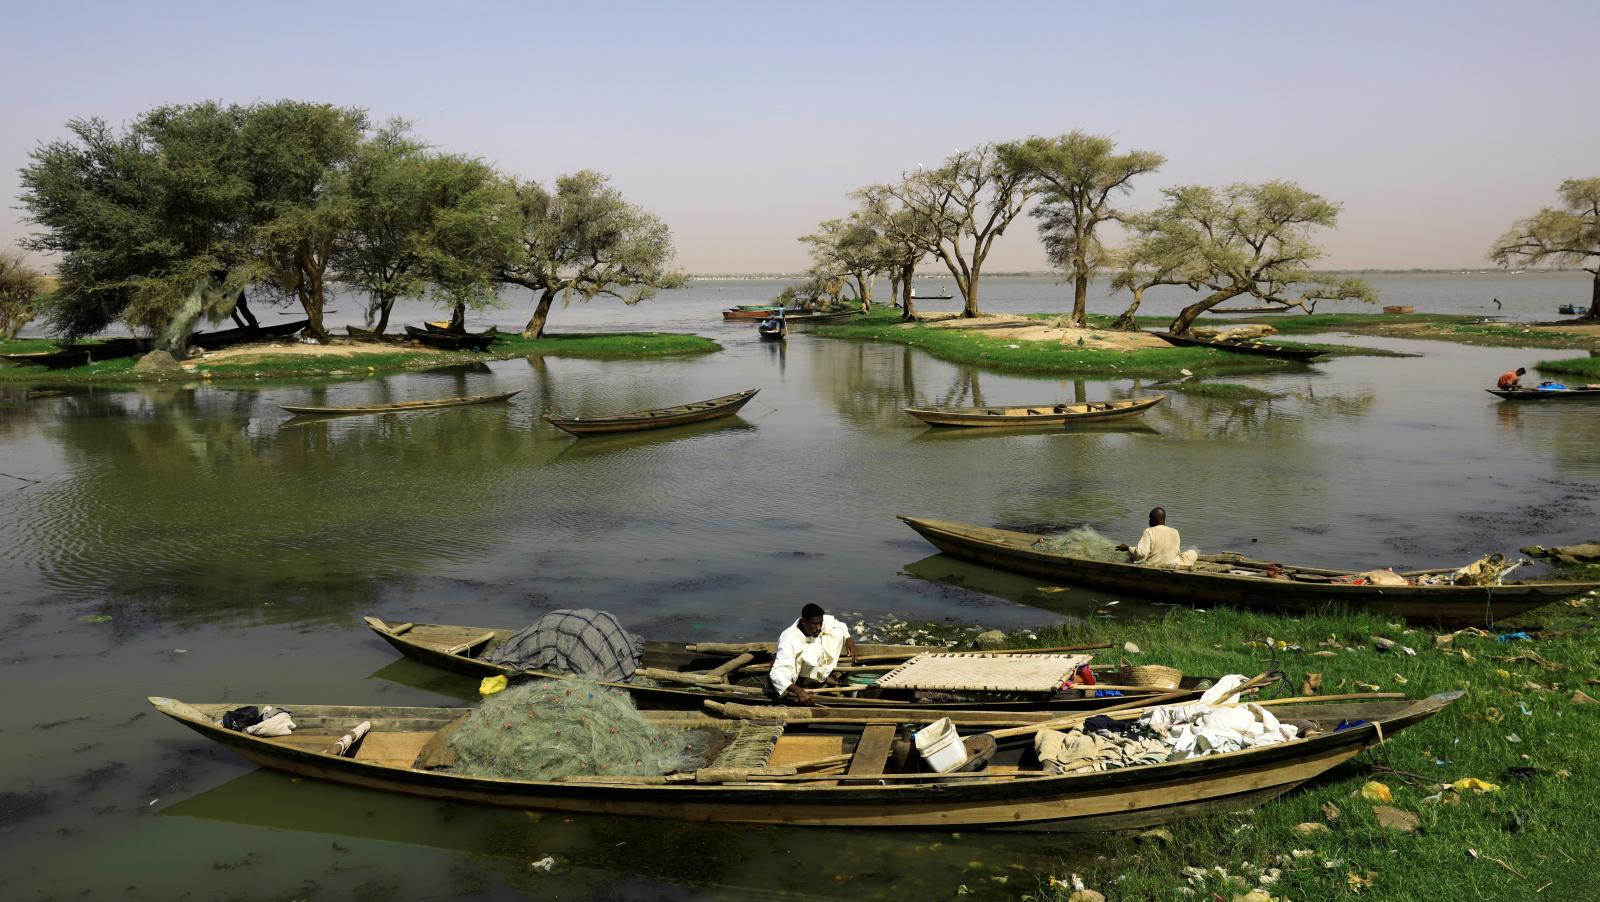 250 million people rely on the Nile for water that may not exist by 2080